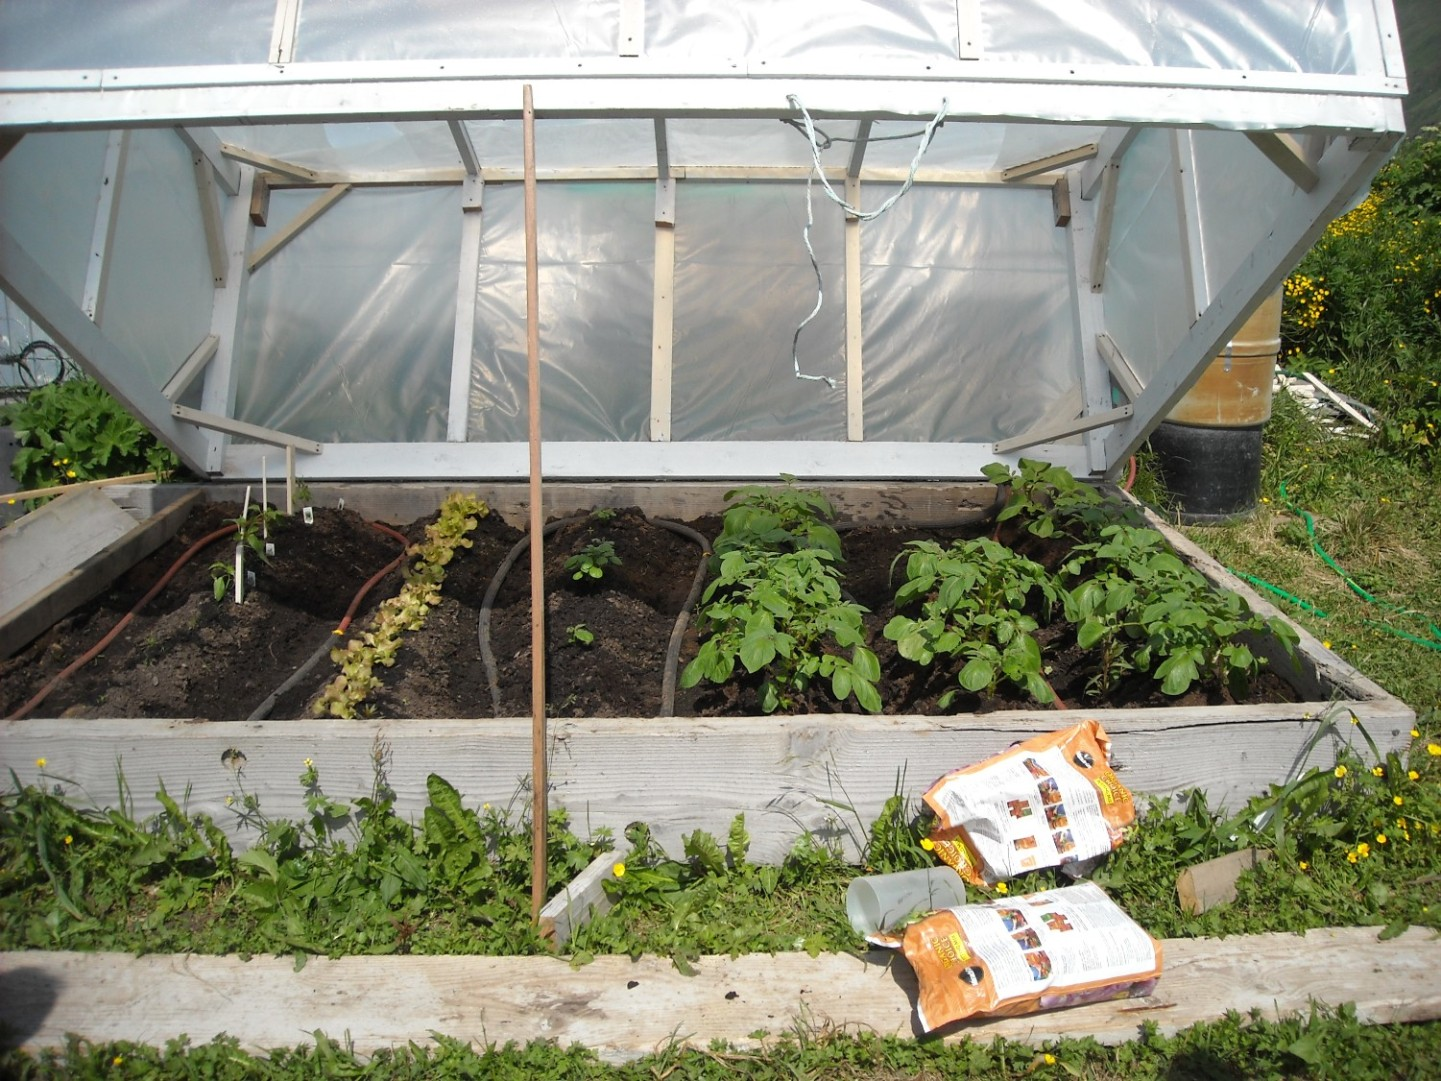 Potato rows, lettuce, green peppers, and carrots.